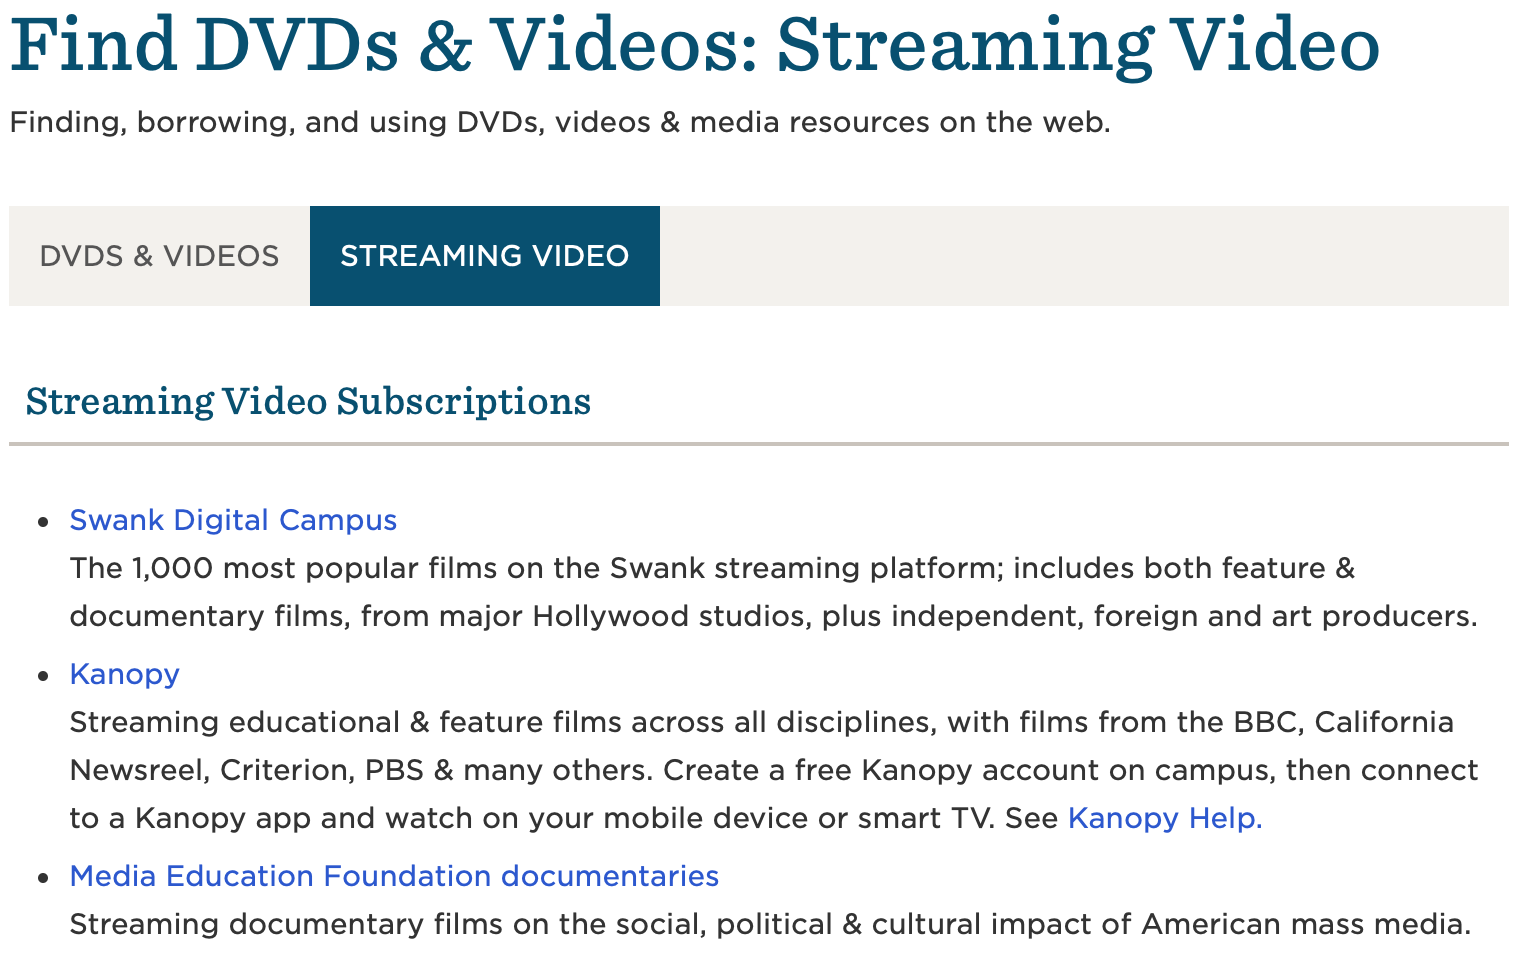 Screenshot of the Streaming Video library guide